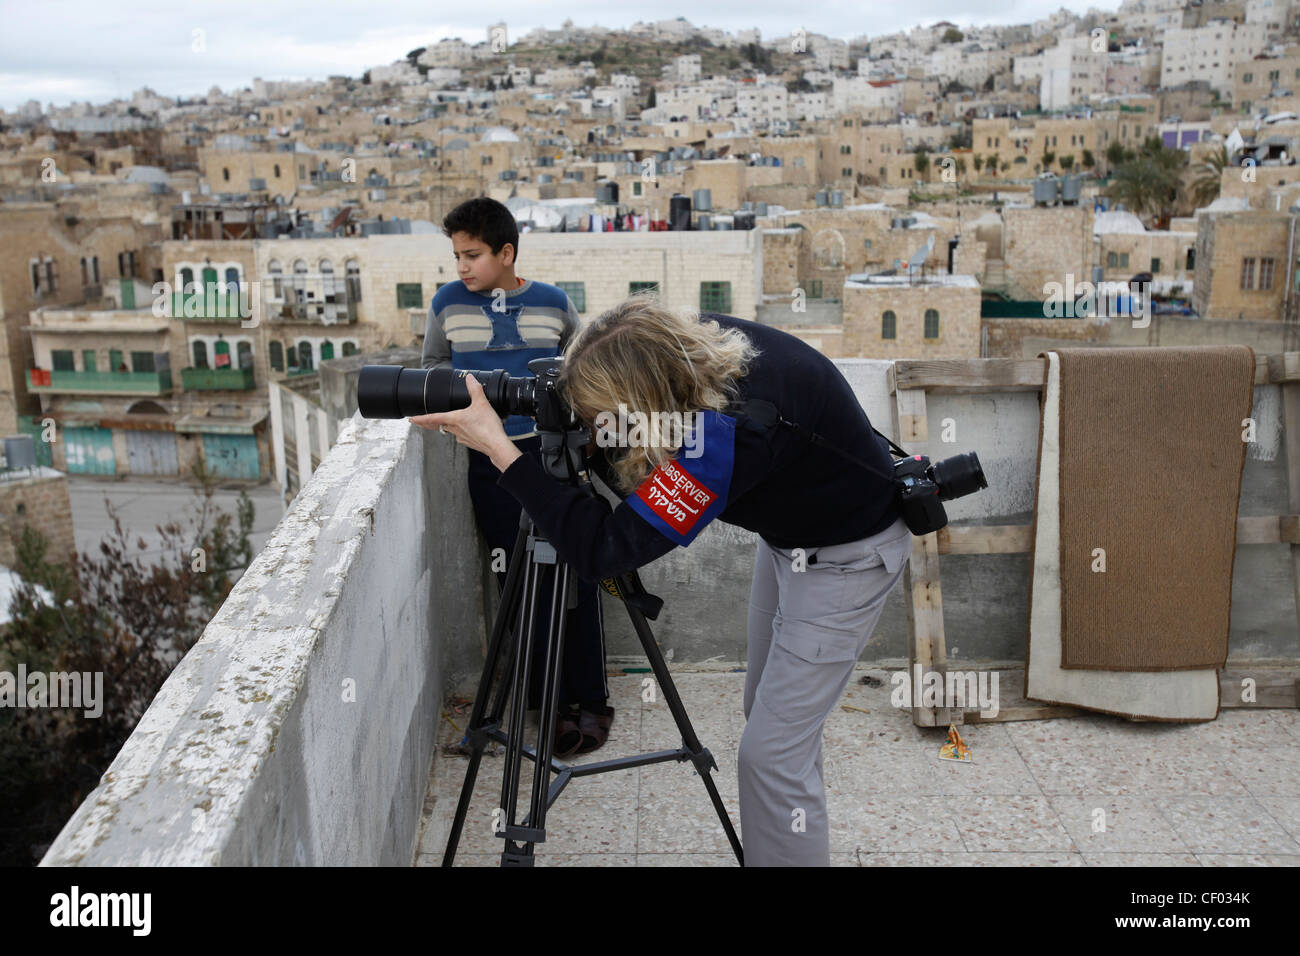 A TIPH (Temporary International Presence in Hebron) civilian observer from Norway photographing Israeli troops from - Stock Image